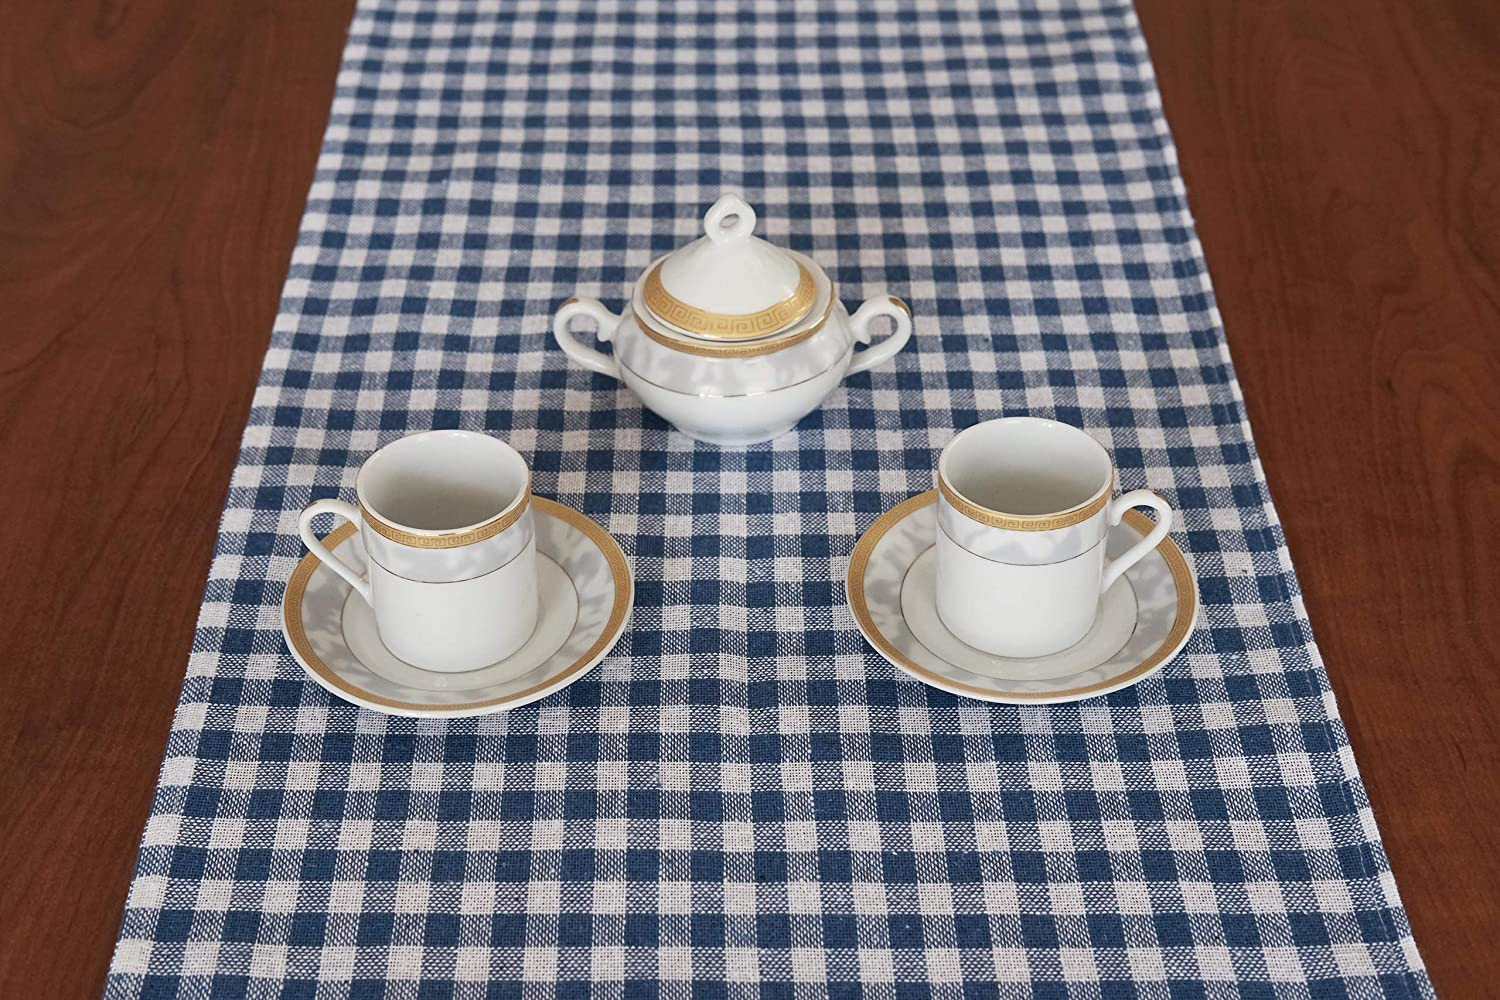 Black, 13x68 inches Madame Gayda Table Runner Buffalo Check Cotton Family Dinners Gatherings Indoor Outdoor Parties Everyday Use Black /& White